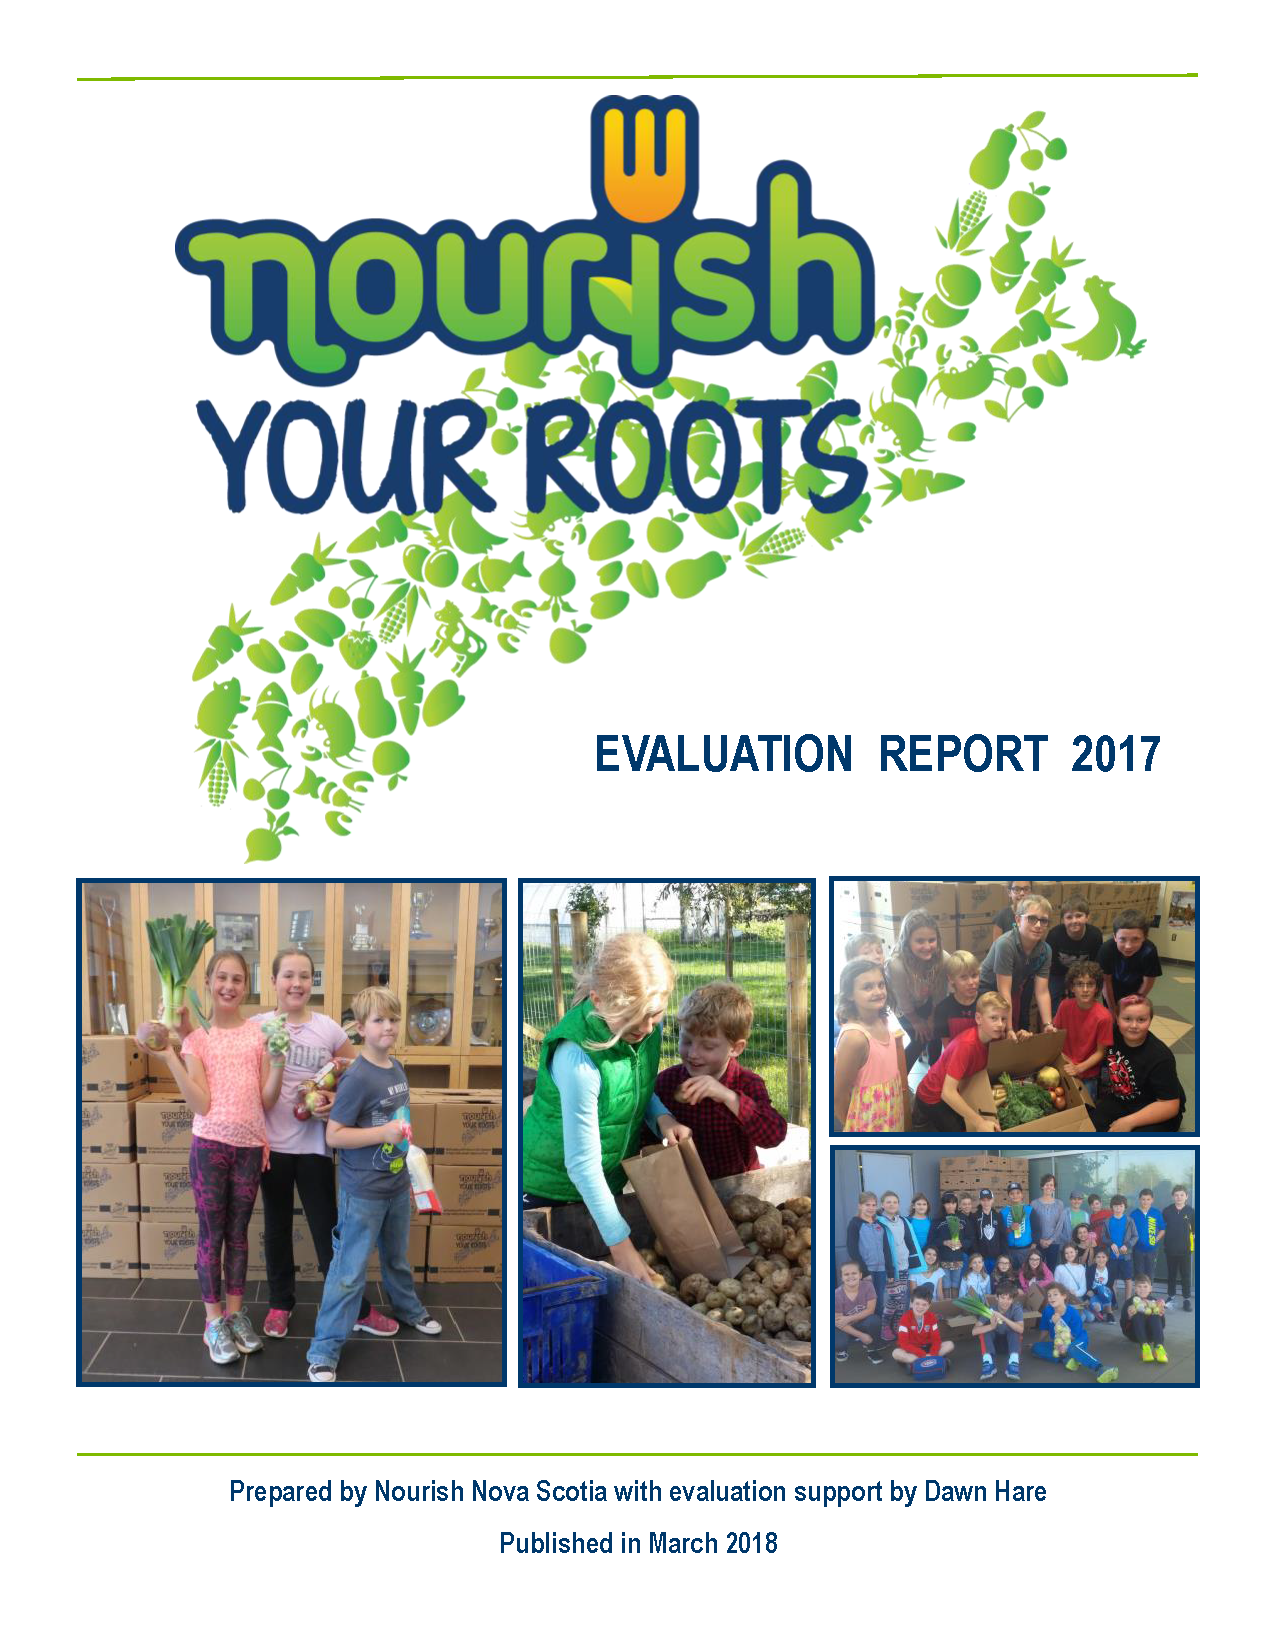 2017 Nourish Your Roots Evaluation